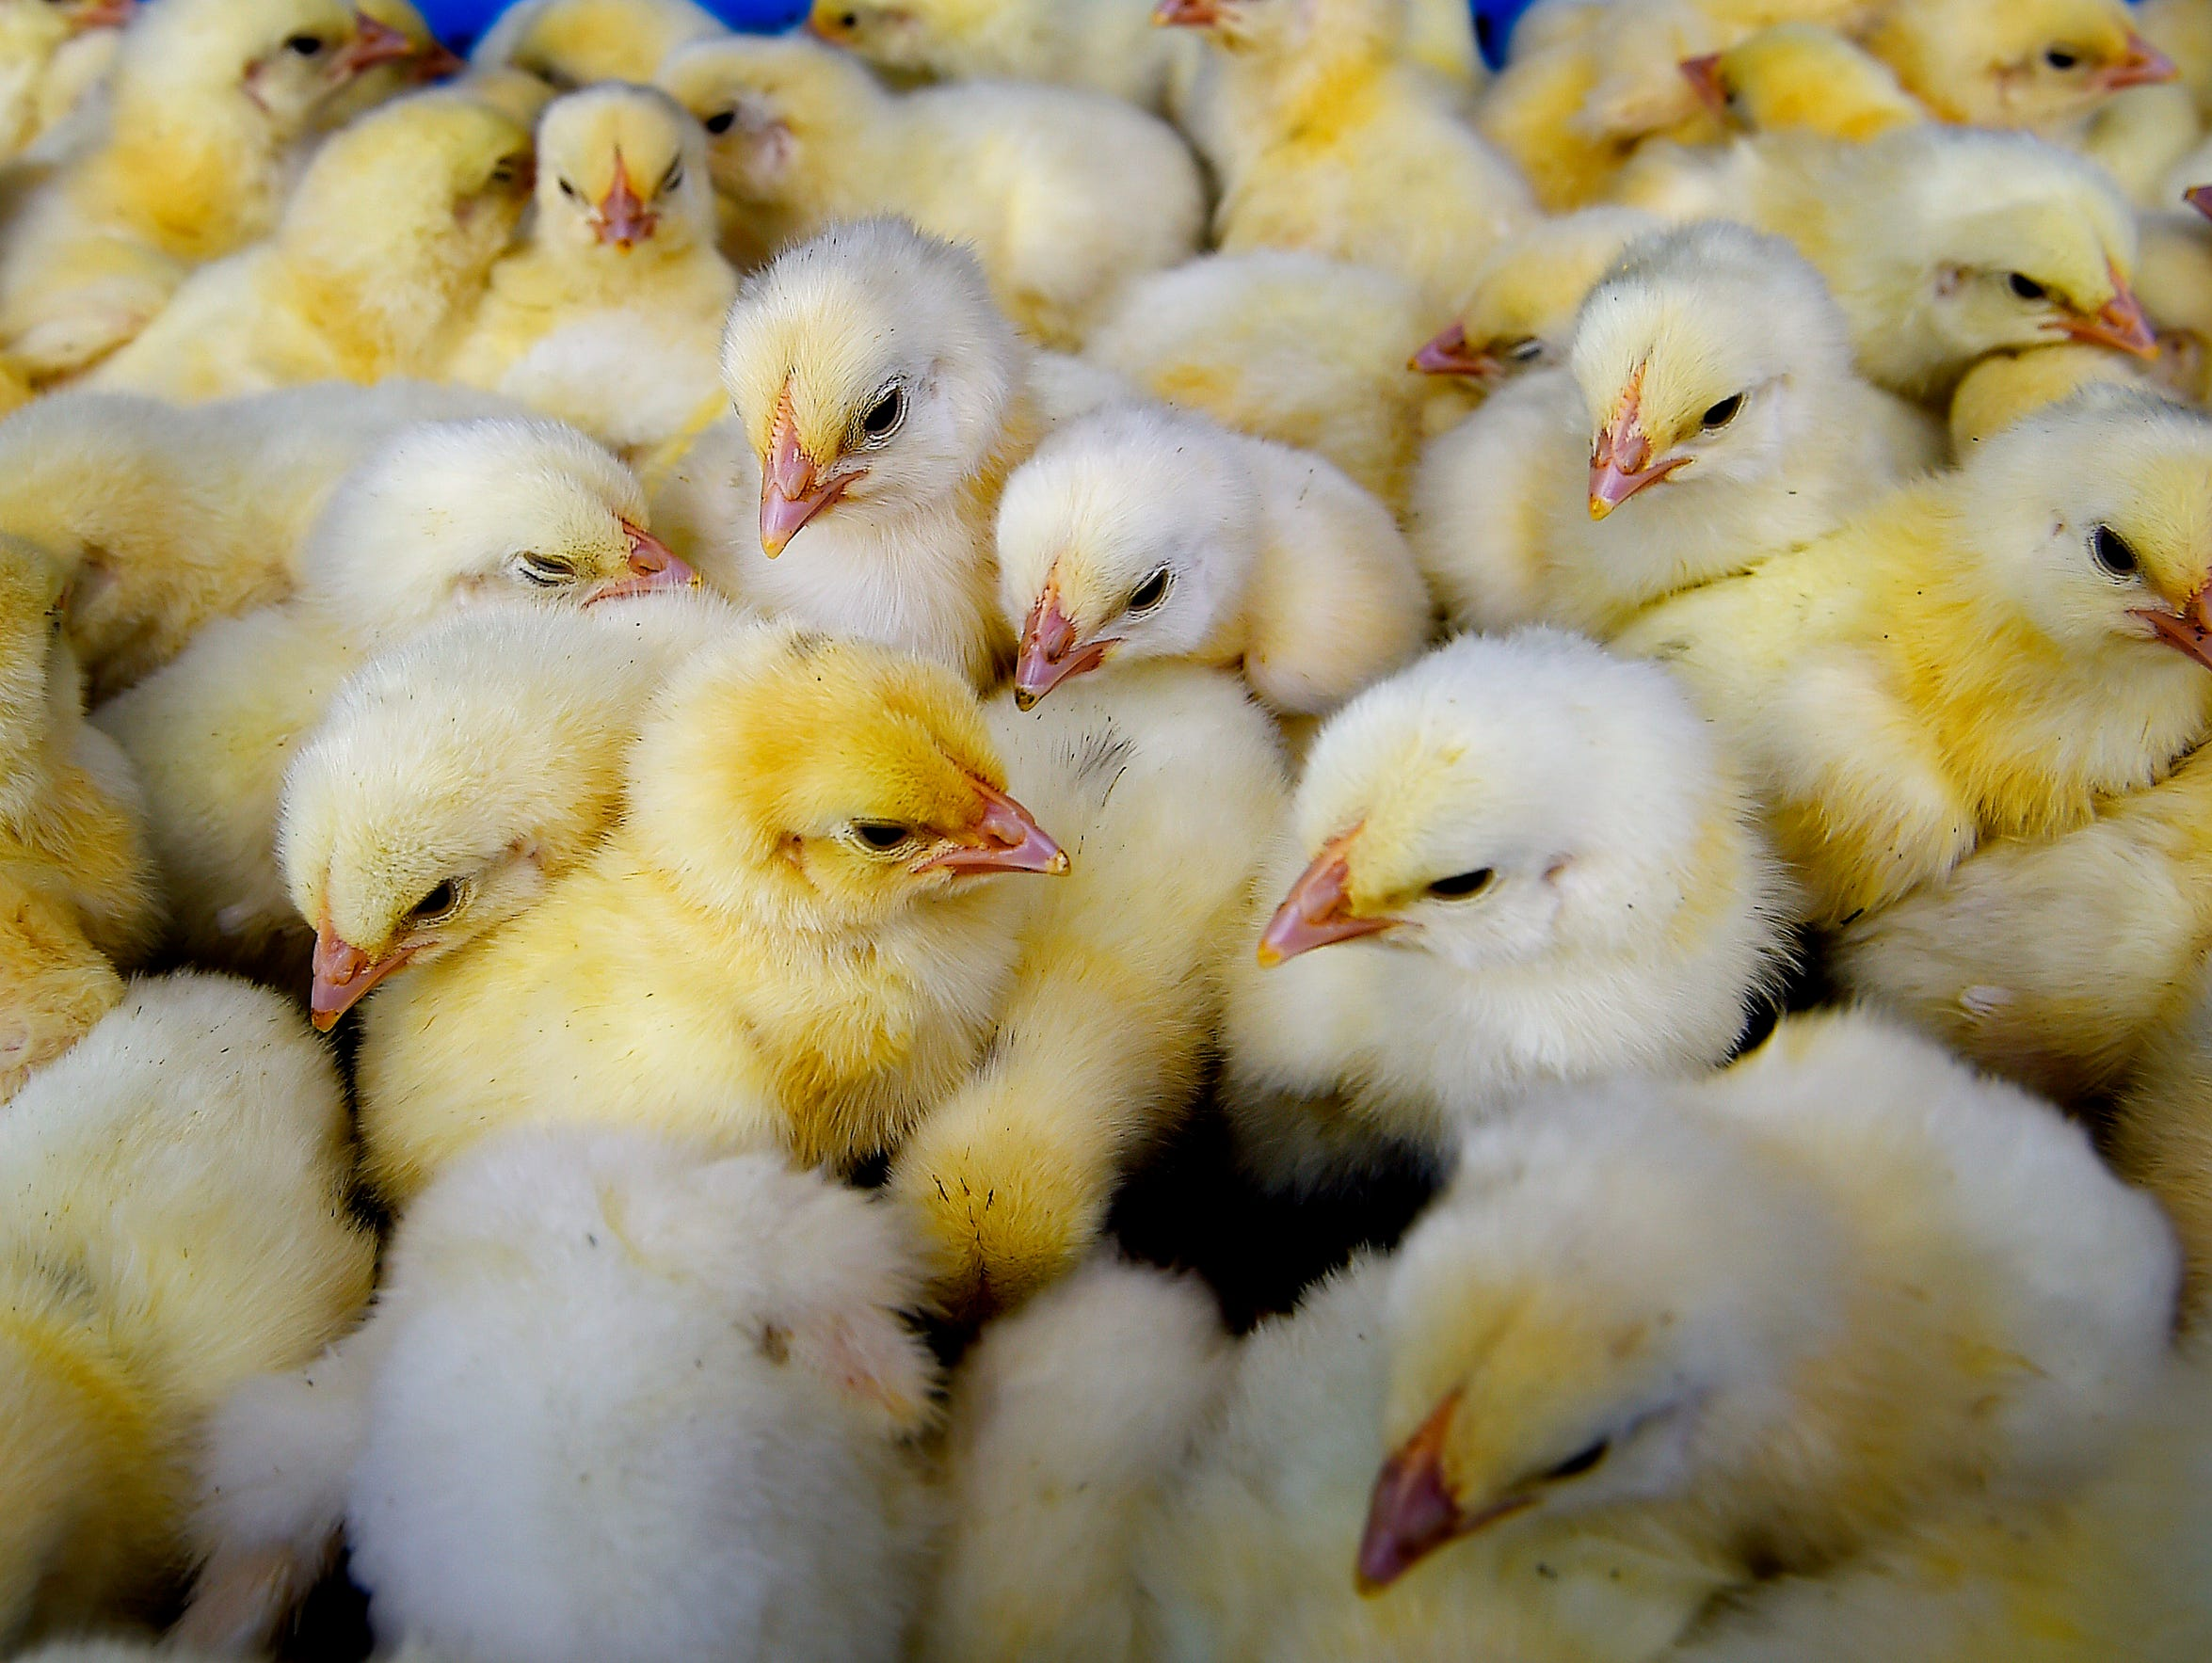 Before they are transported to farms, chicks are stacked